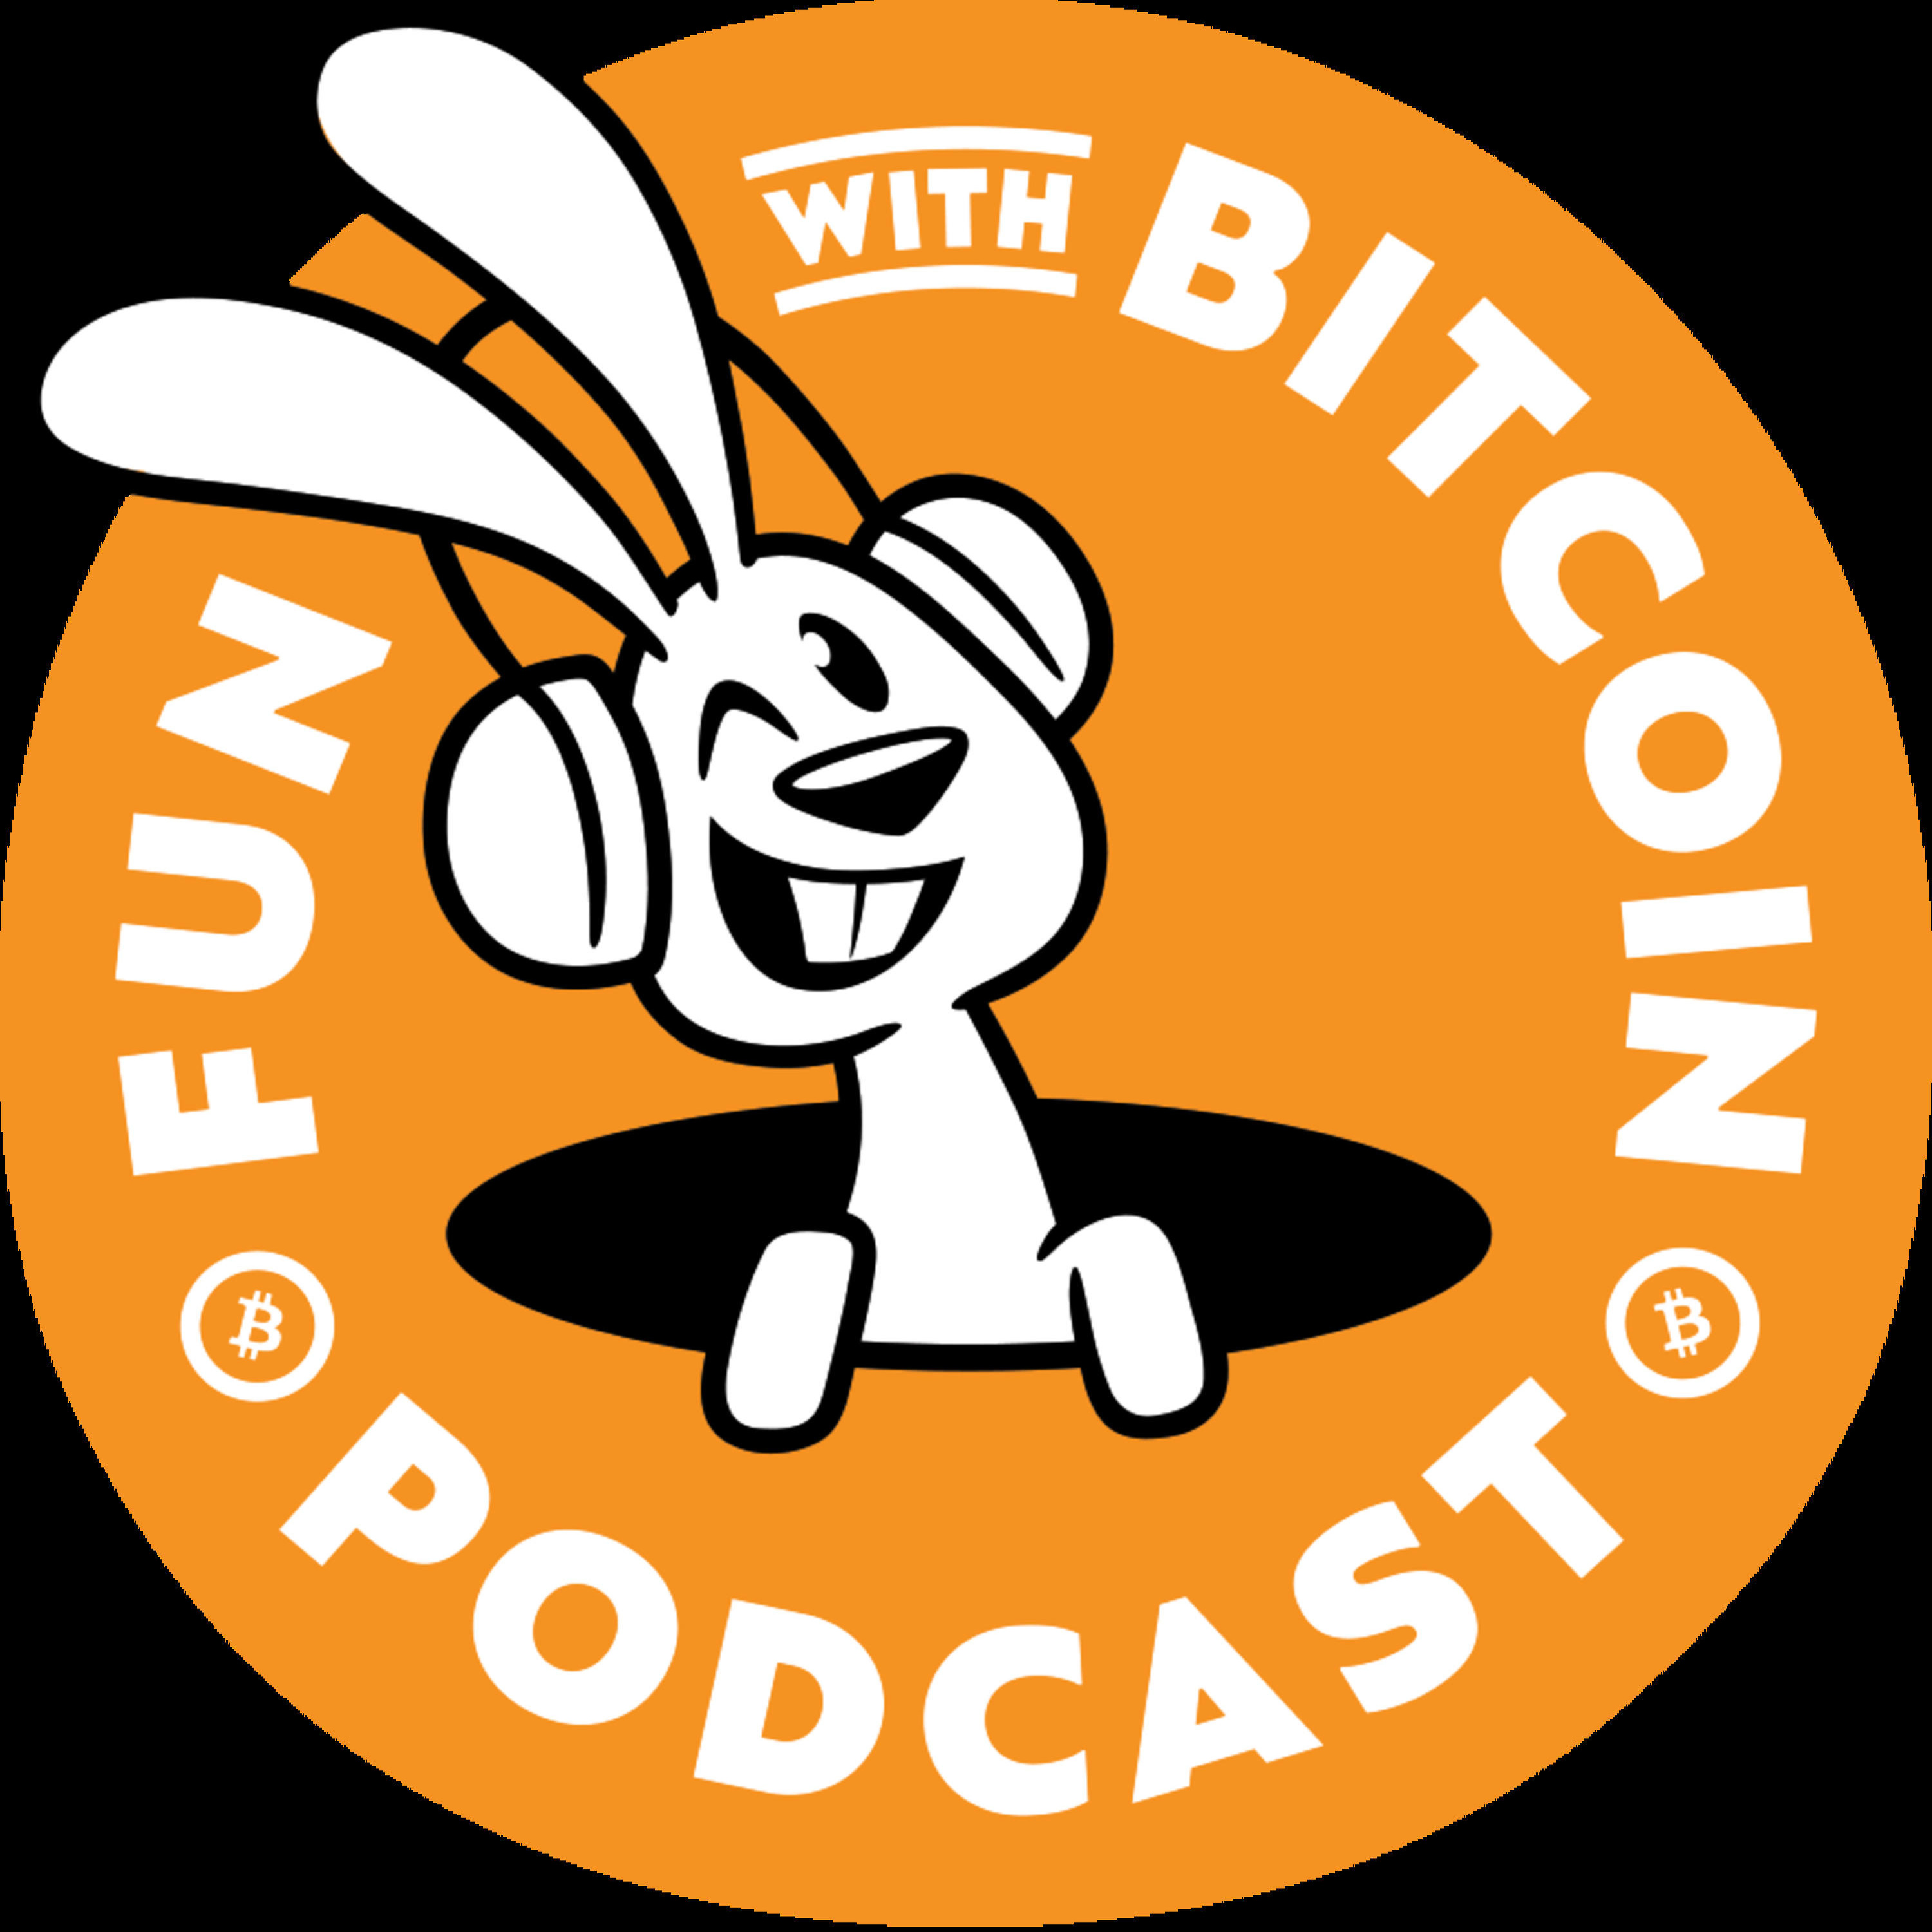 Fun with Bitcoin Podcast